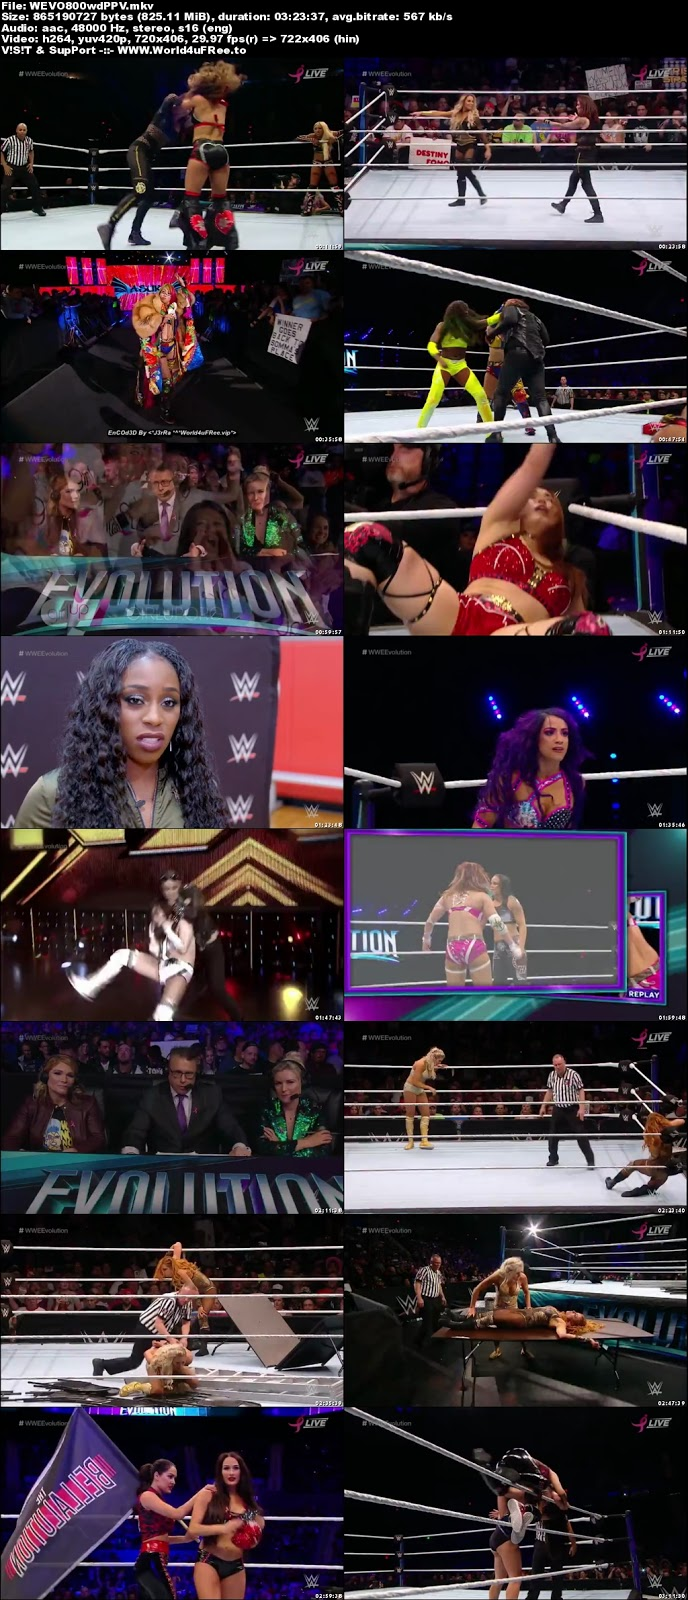 Wwe Evolution 2018 PPV WEBRip 480p 800MB x264 tv show Wwe Evolution 2018 PPV 800mb 720p compressed small size free download or watch online at world4ufree.vip